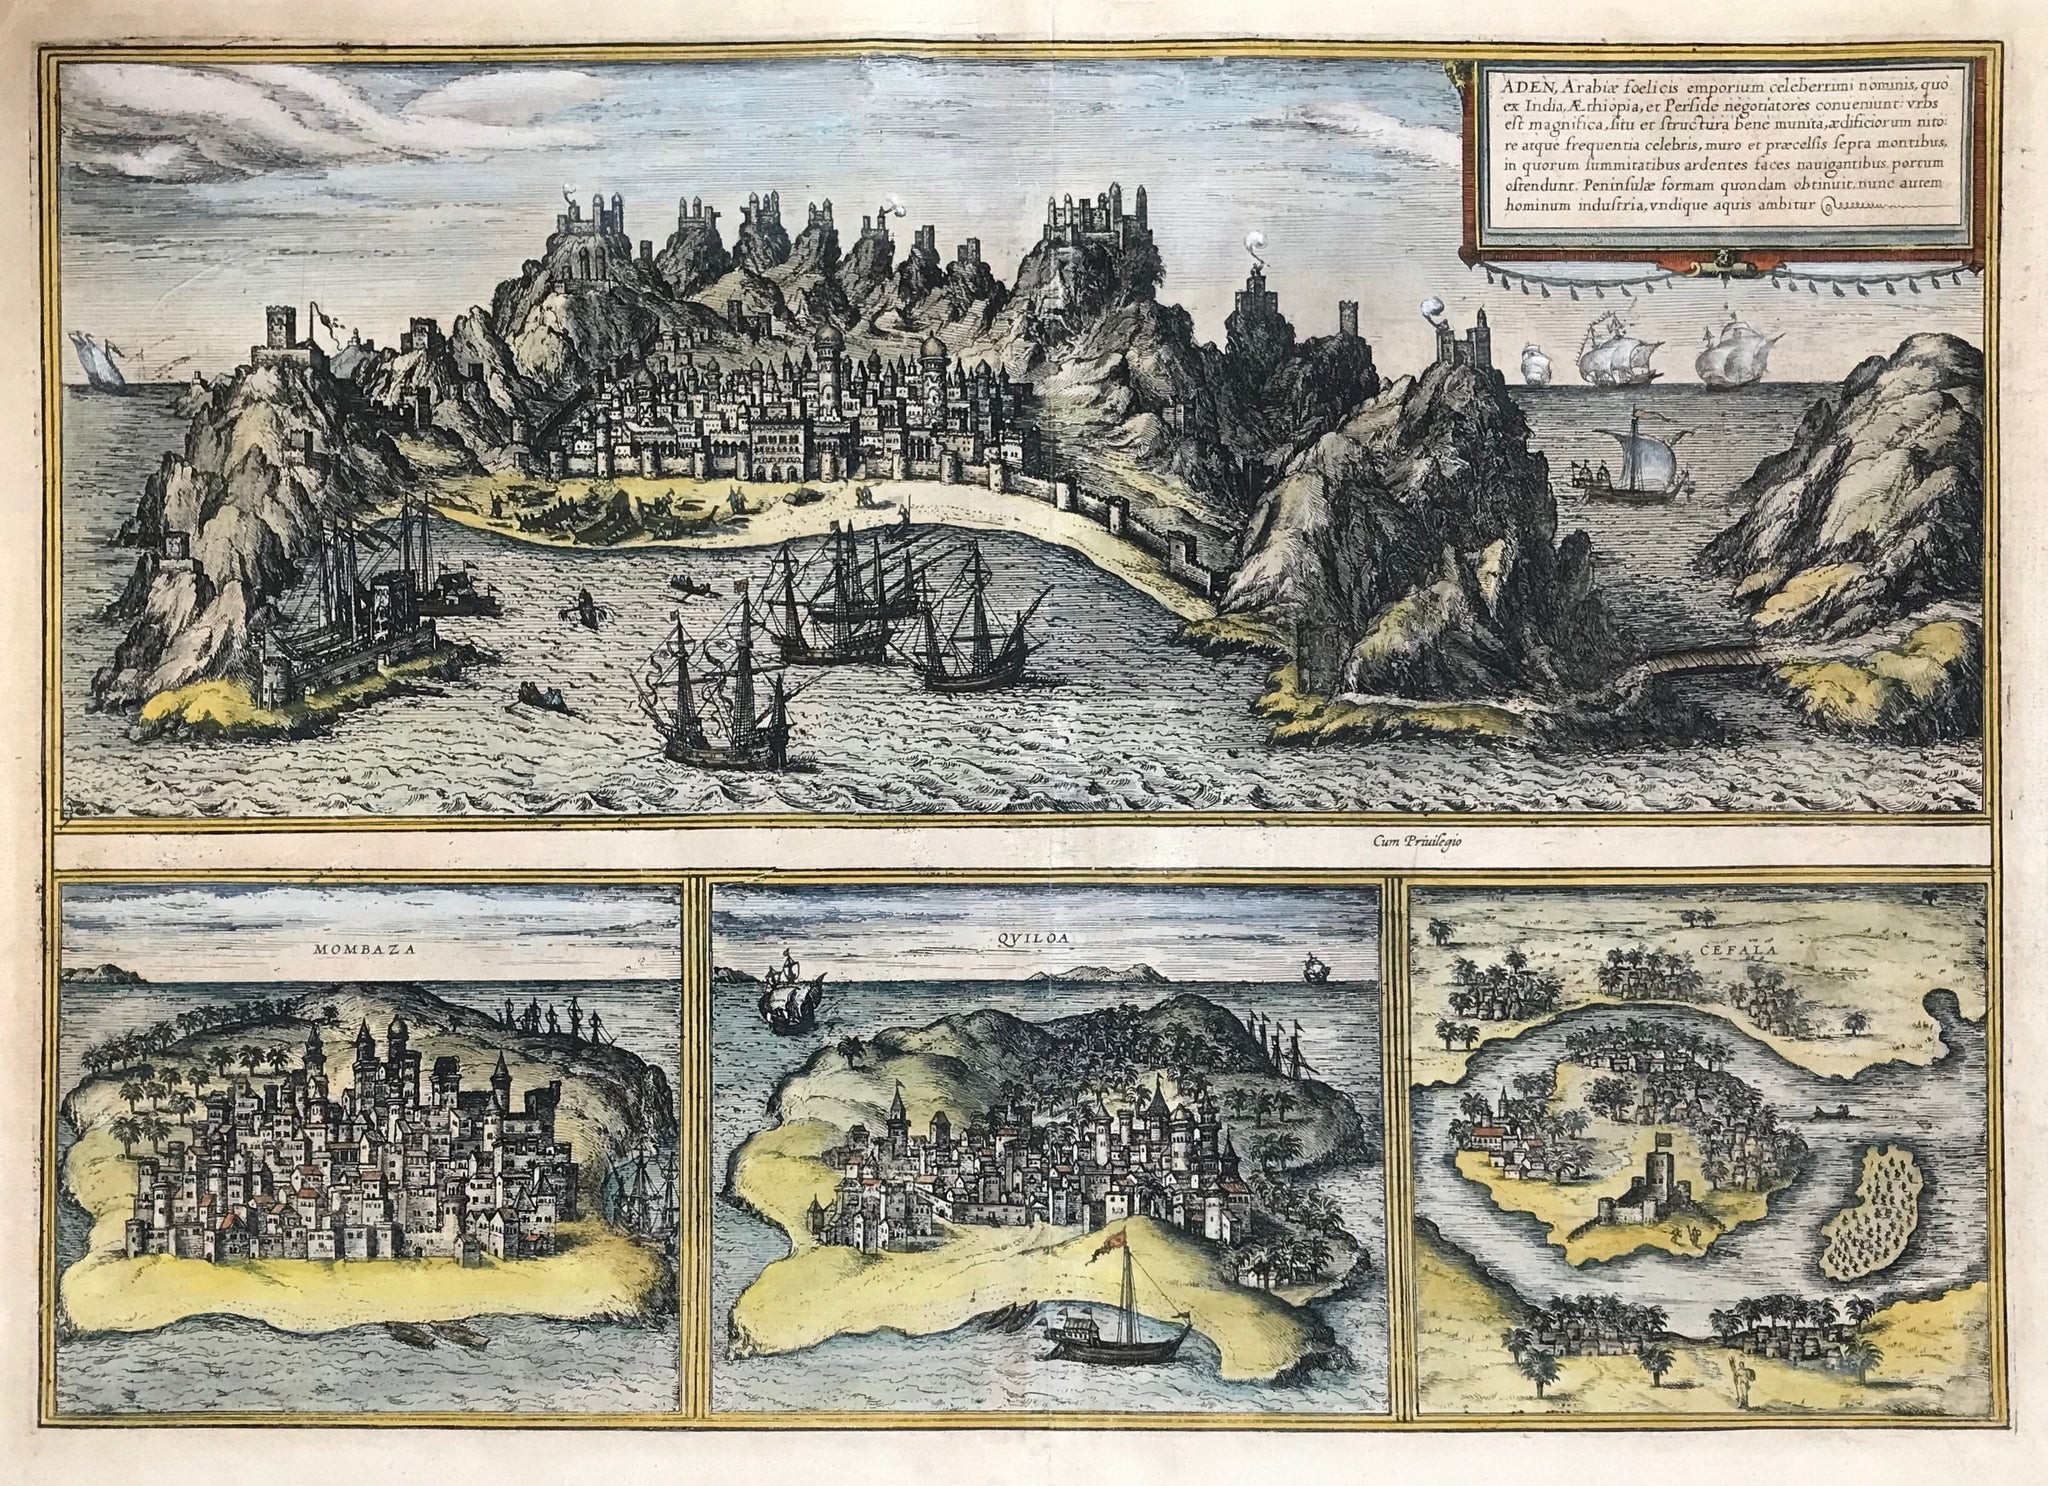 By Georg Braun (1540-1622) and Frans Hogenberg (1535-1590)  Cologne, 1572  The most prominent panoramic view of the city of Aden in Yemen in Arabia and three views of Africa's East Coast in the 16th century.  Mombaza (Mombasa in Kenya)  Quiloa (near Kilwa Kisiwani)  Cefala (Sofala in Mozambique)